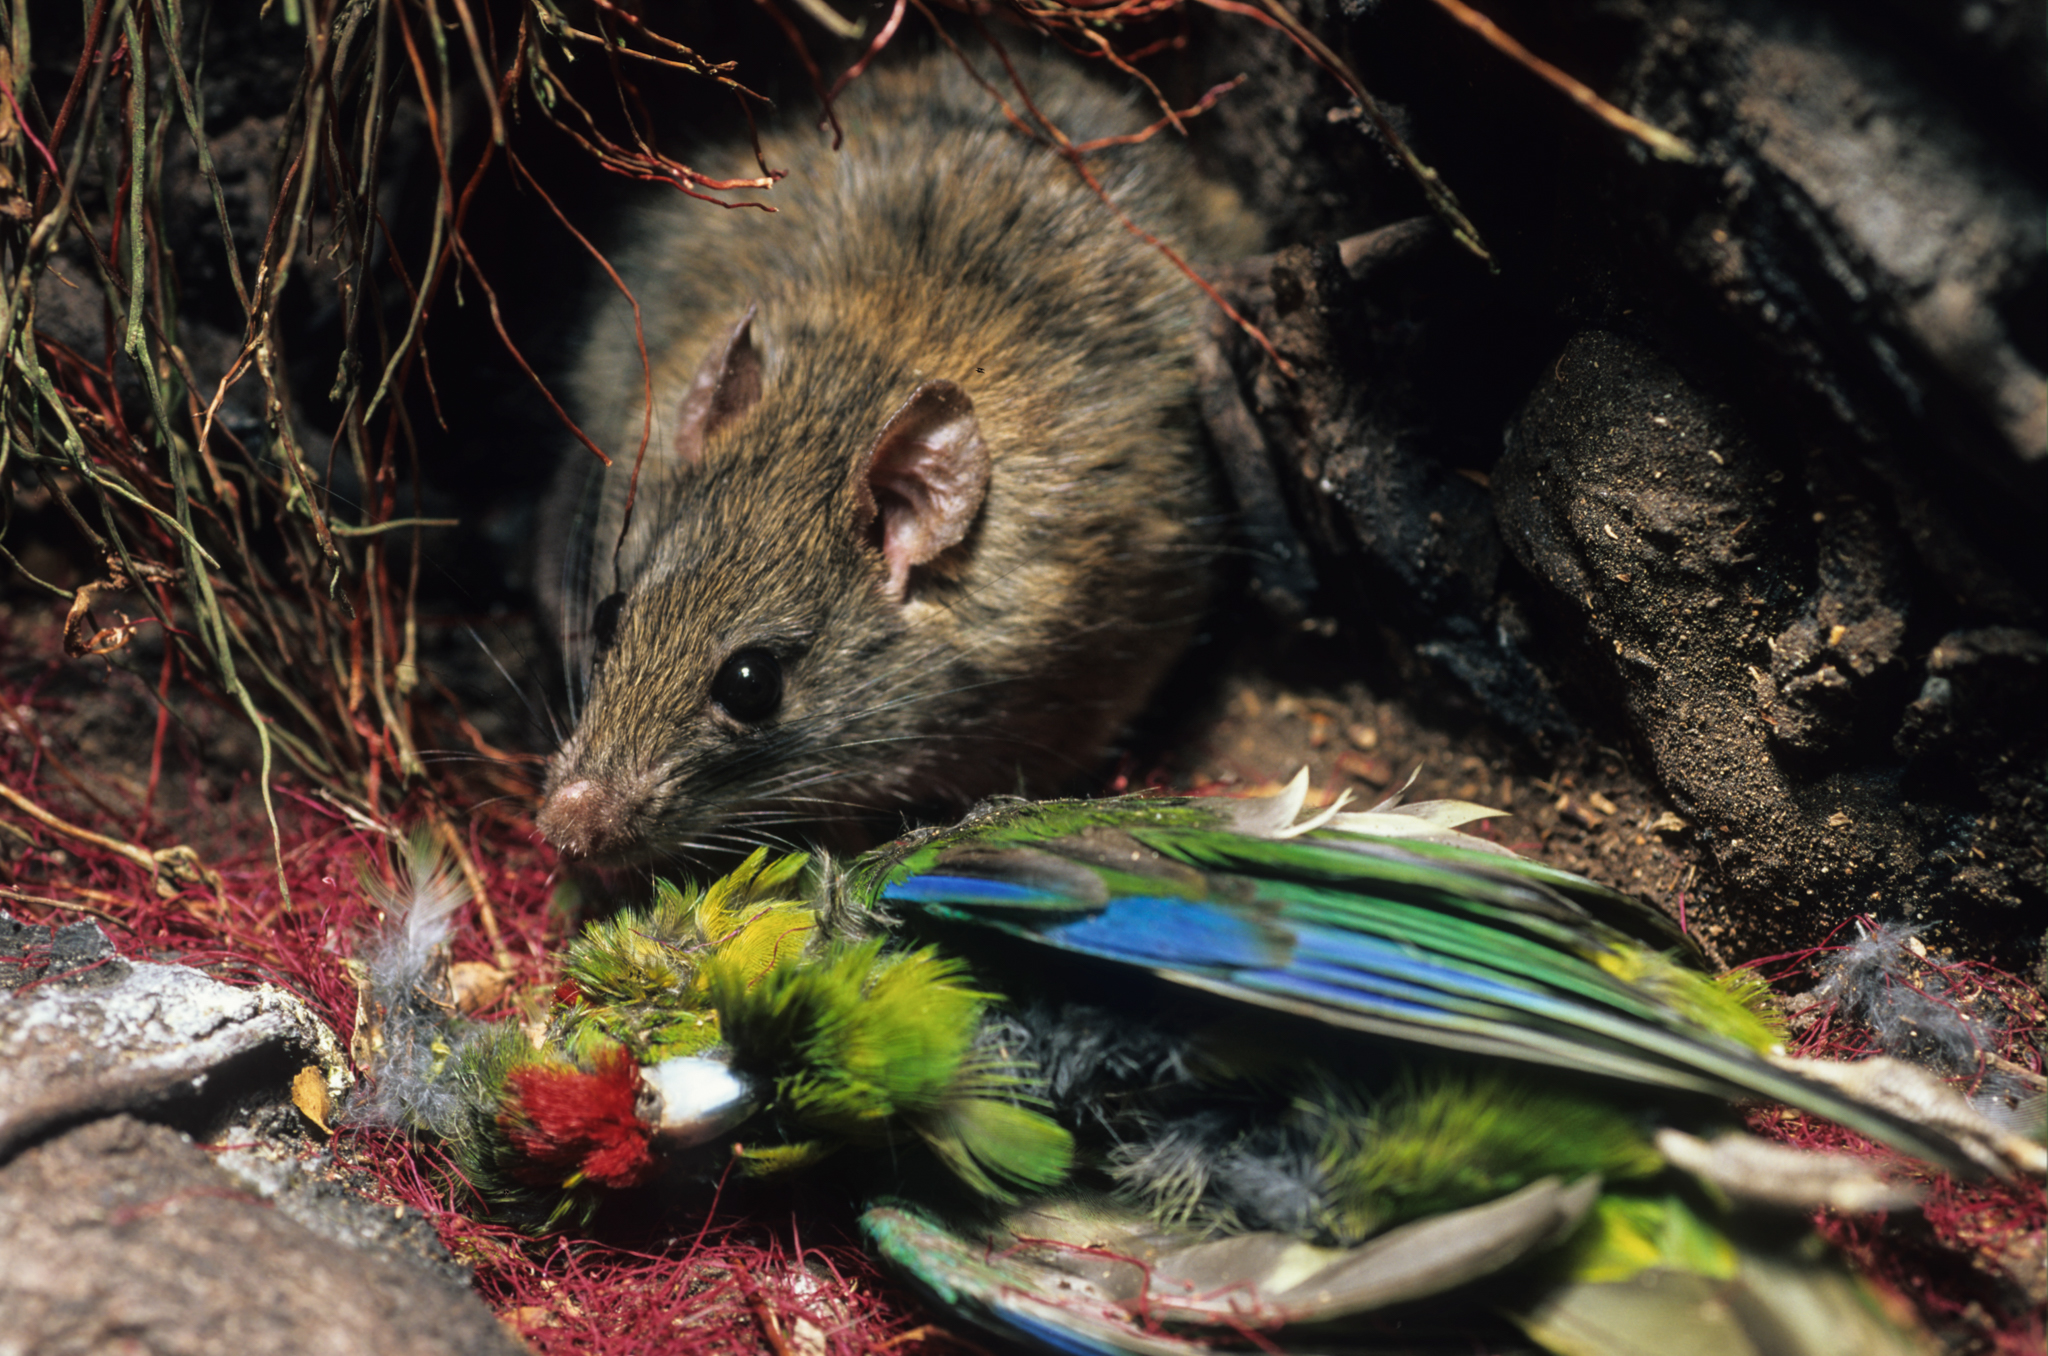 A ship rat (Rattus rattus) polishes off a predated kakariki bird on its nest. The rat species is a notorious predator of native birds and their eggs. Photograph by Rod Morris / www.rodmorris.co.nz